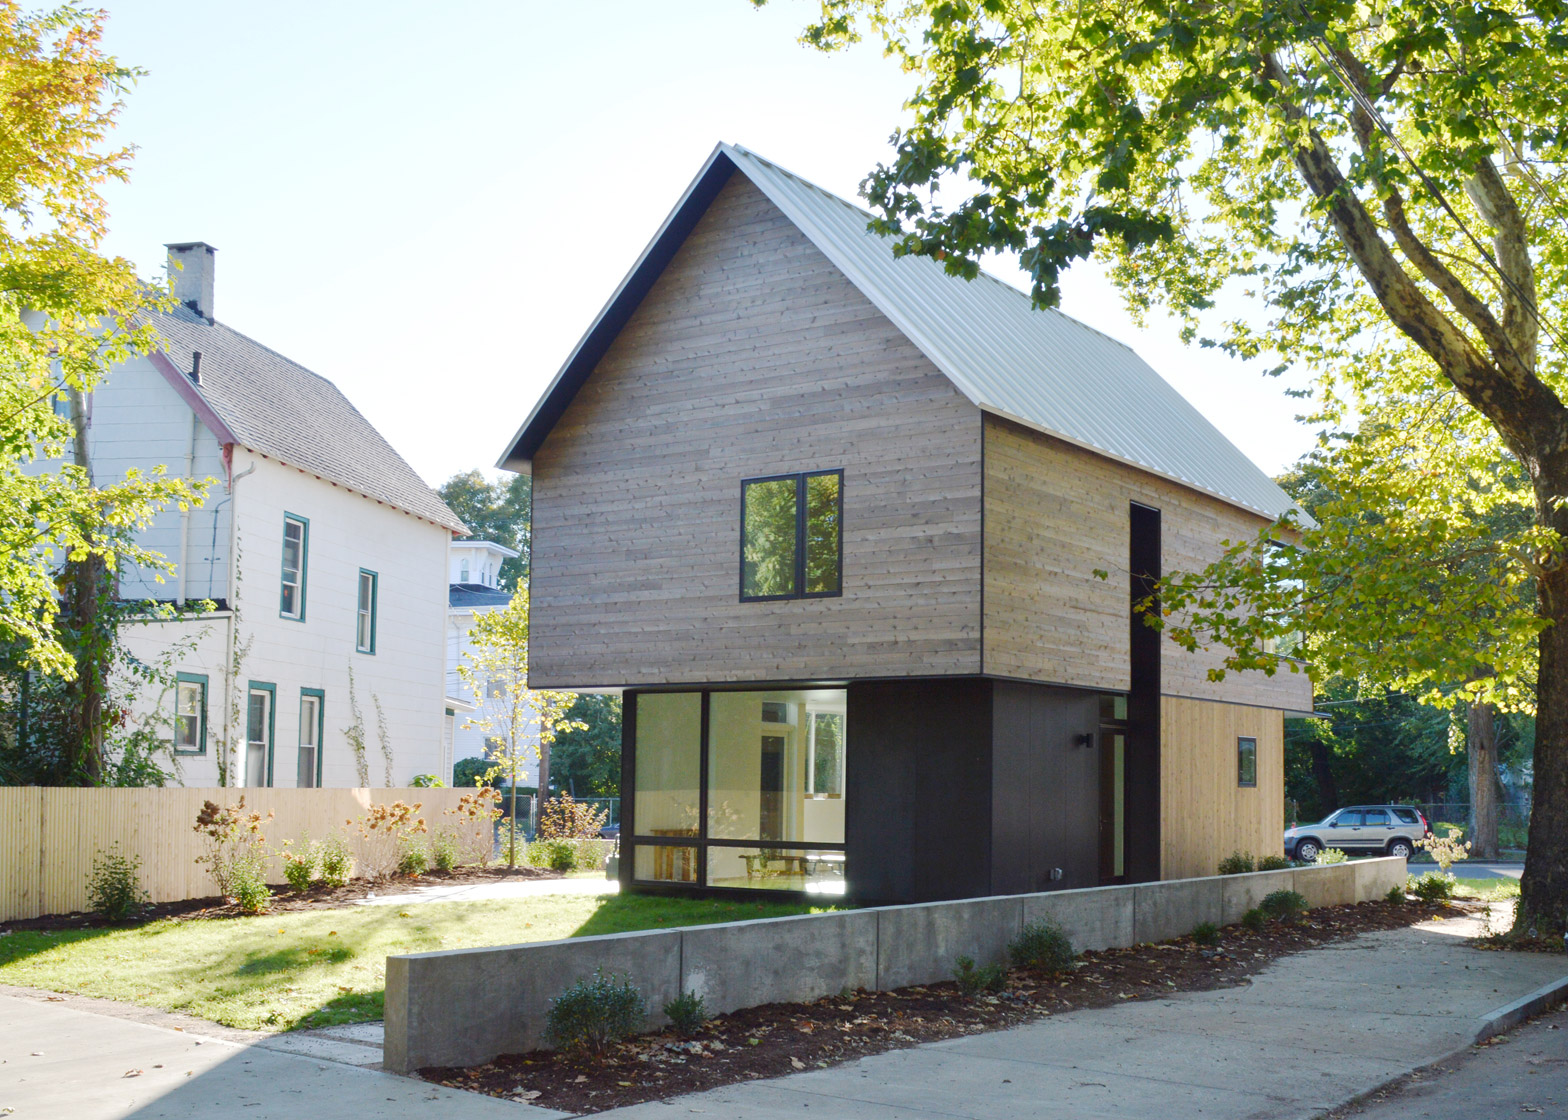 Jim Vlock Building Project by Yale School of Architecture